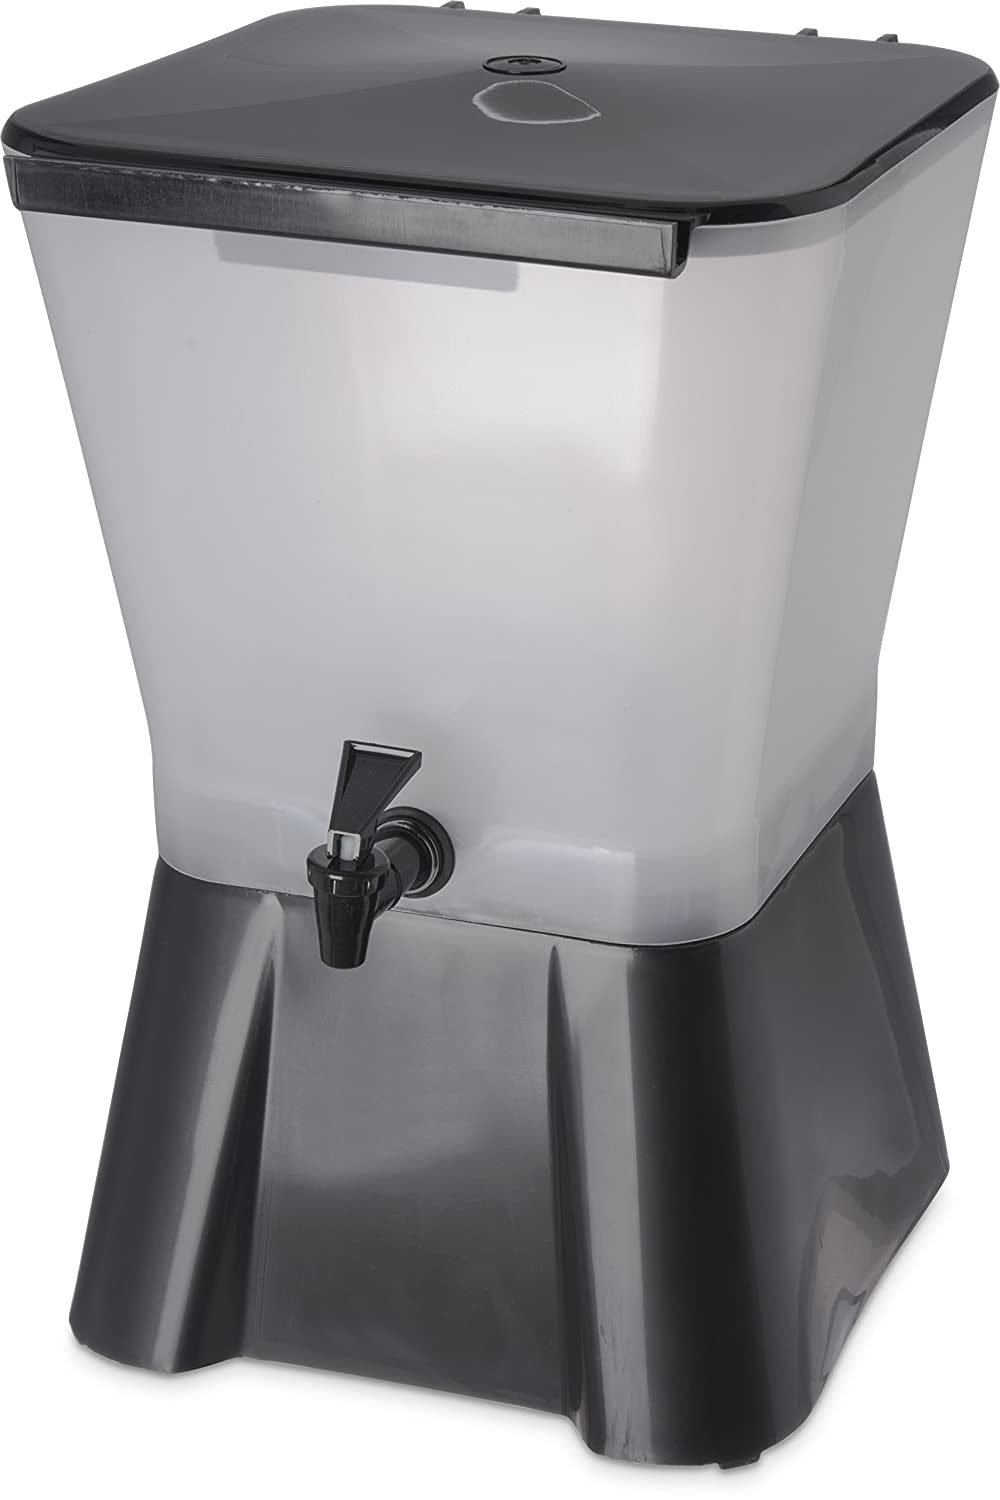 Carlisle 1082003 Polypropylene Square Beverage Dispenser with Base, 3 gal. Capacity, 17